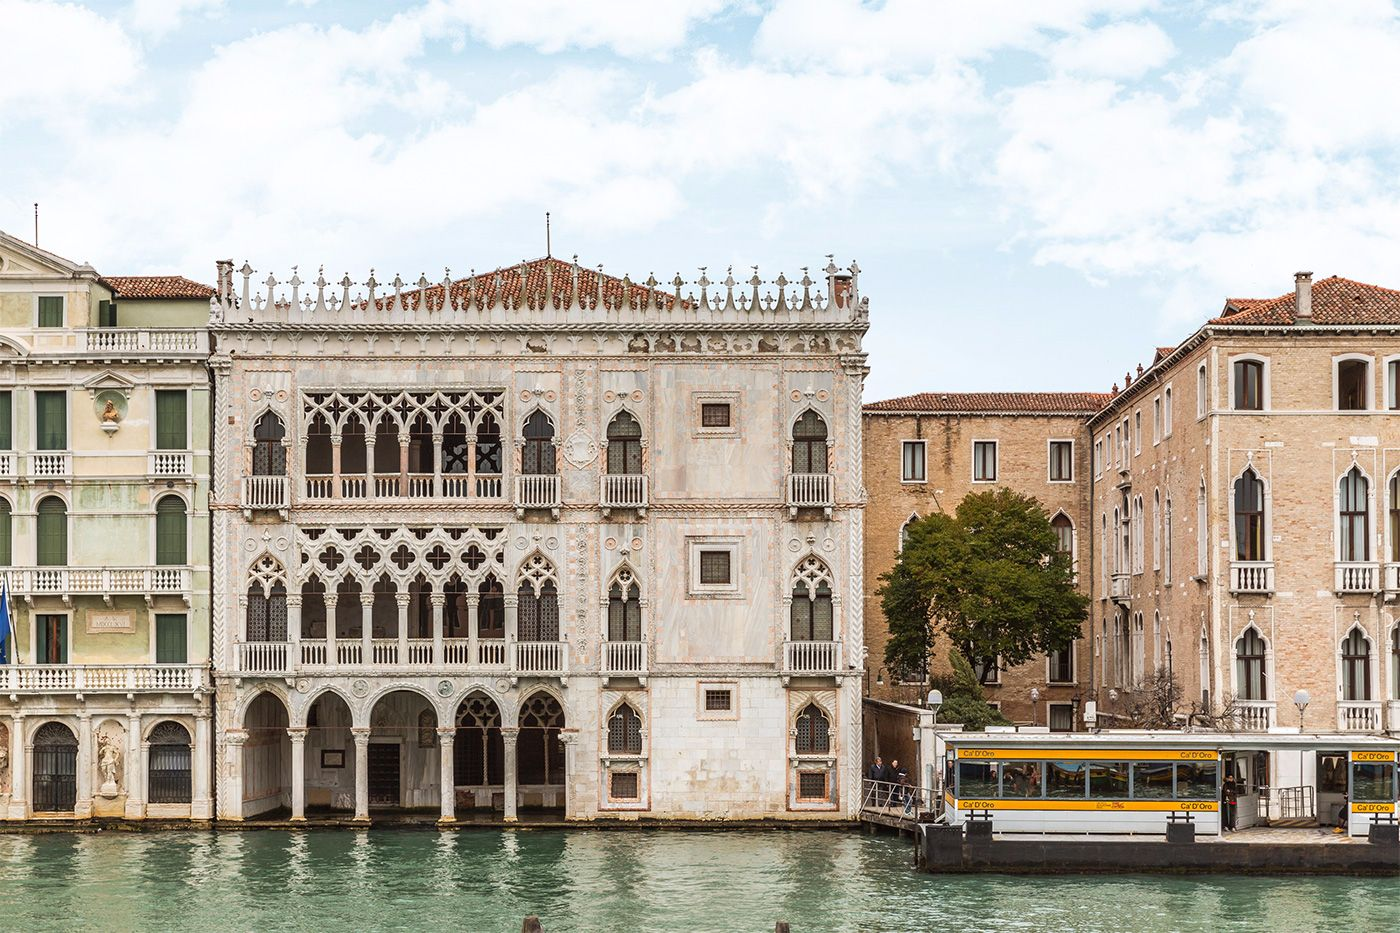 Cà d'Oro: the most beautiful Palazzo on the Grand Canal, just in front of you!